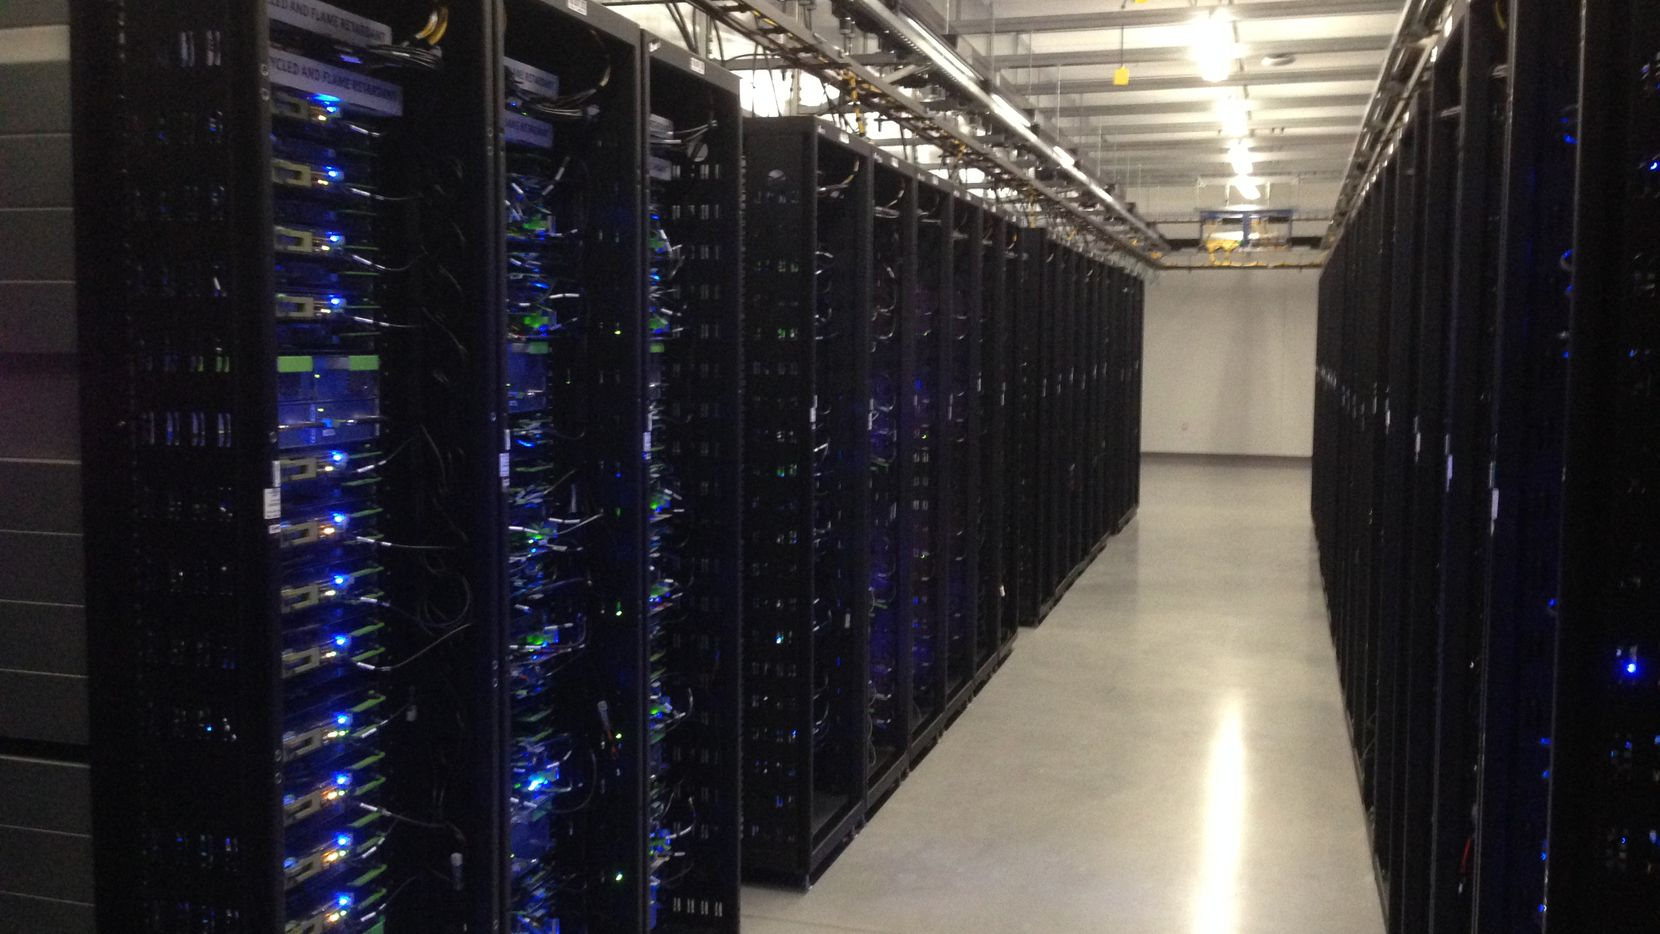 So far this year, D-FW was third for total data center leasing, according to CBRE.